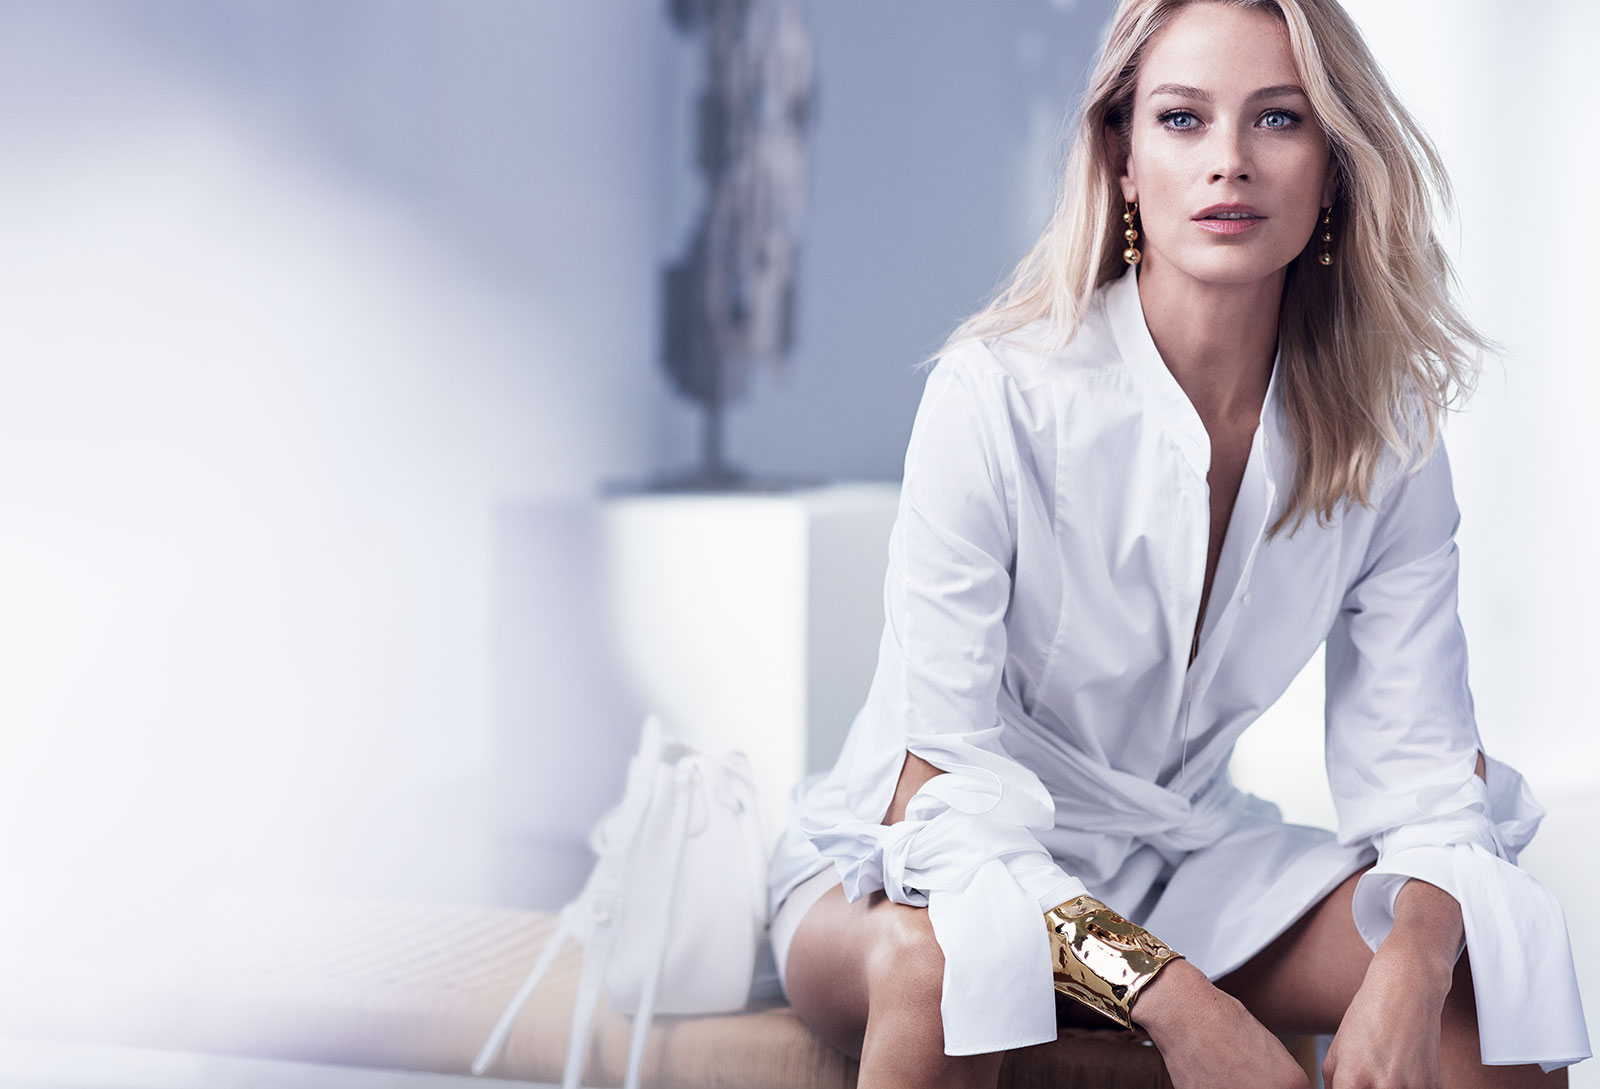 Resilience_Lift_Night_Model_Carolyn_Murphy_Global_Expiry_December_2017